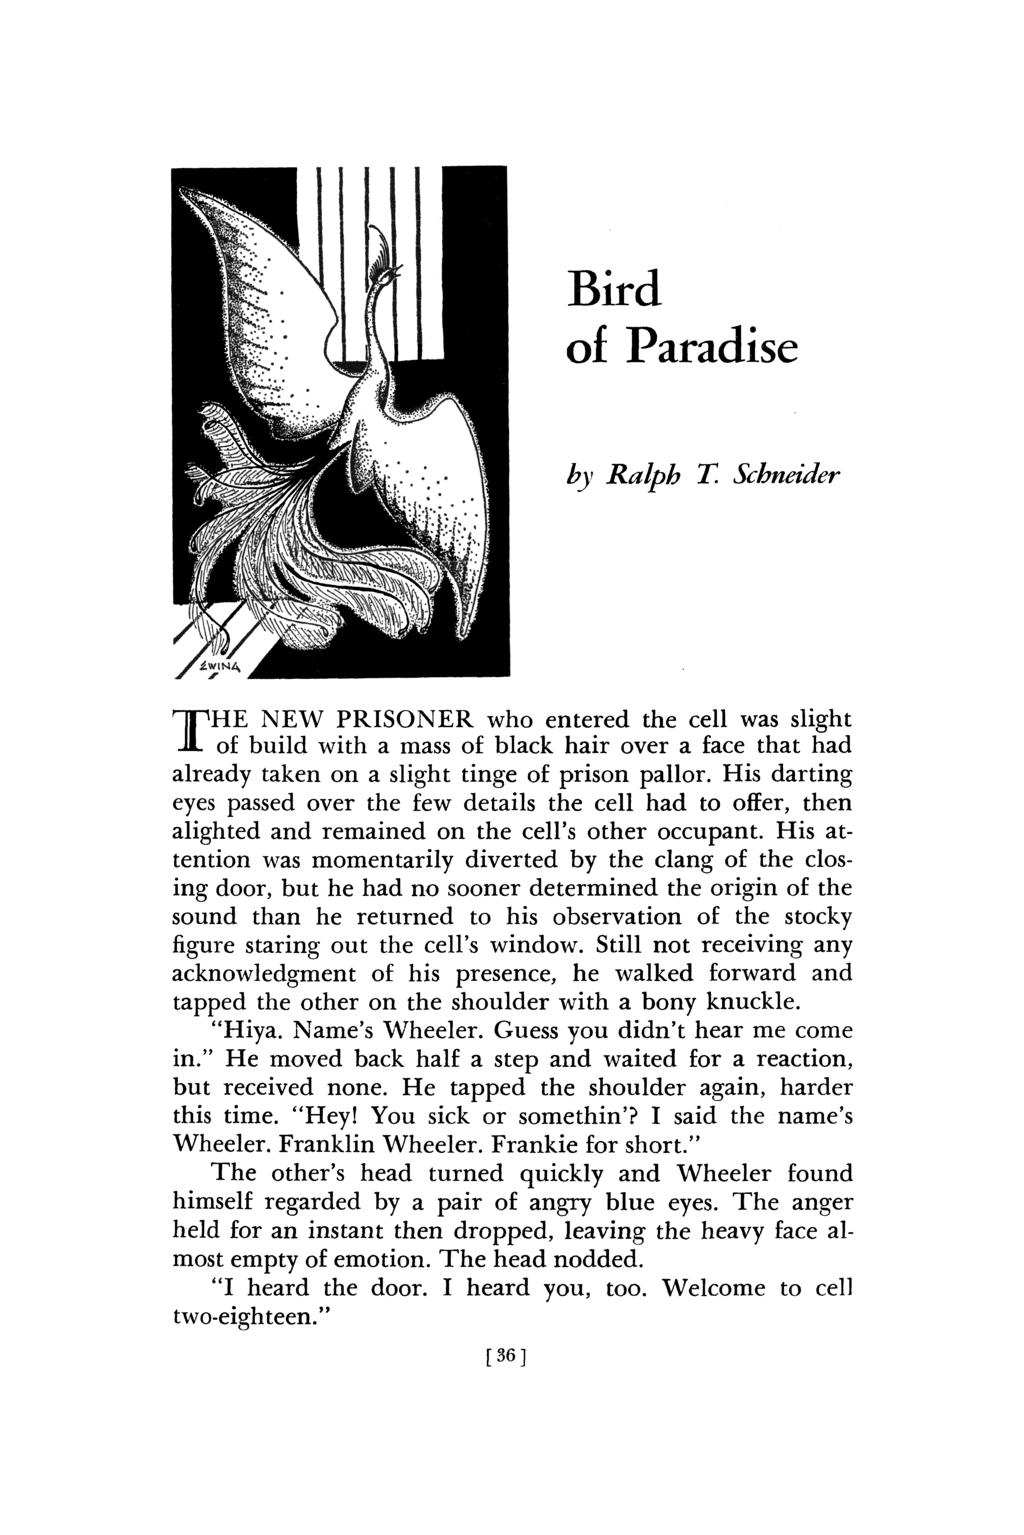 Bird of Paradise by Ralph T. Schneider THE NEW PRISONER who entered the cell was slight of build with a mass of black hair over a face that had already taken on a slight tinge of prison pallor.